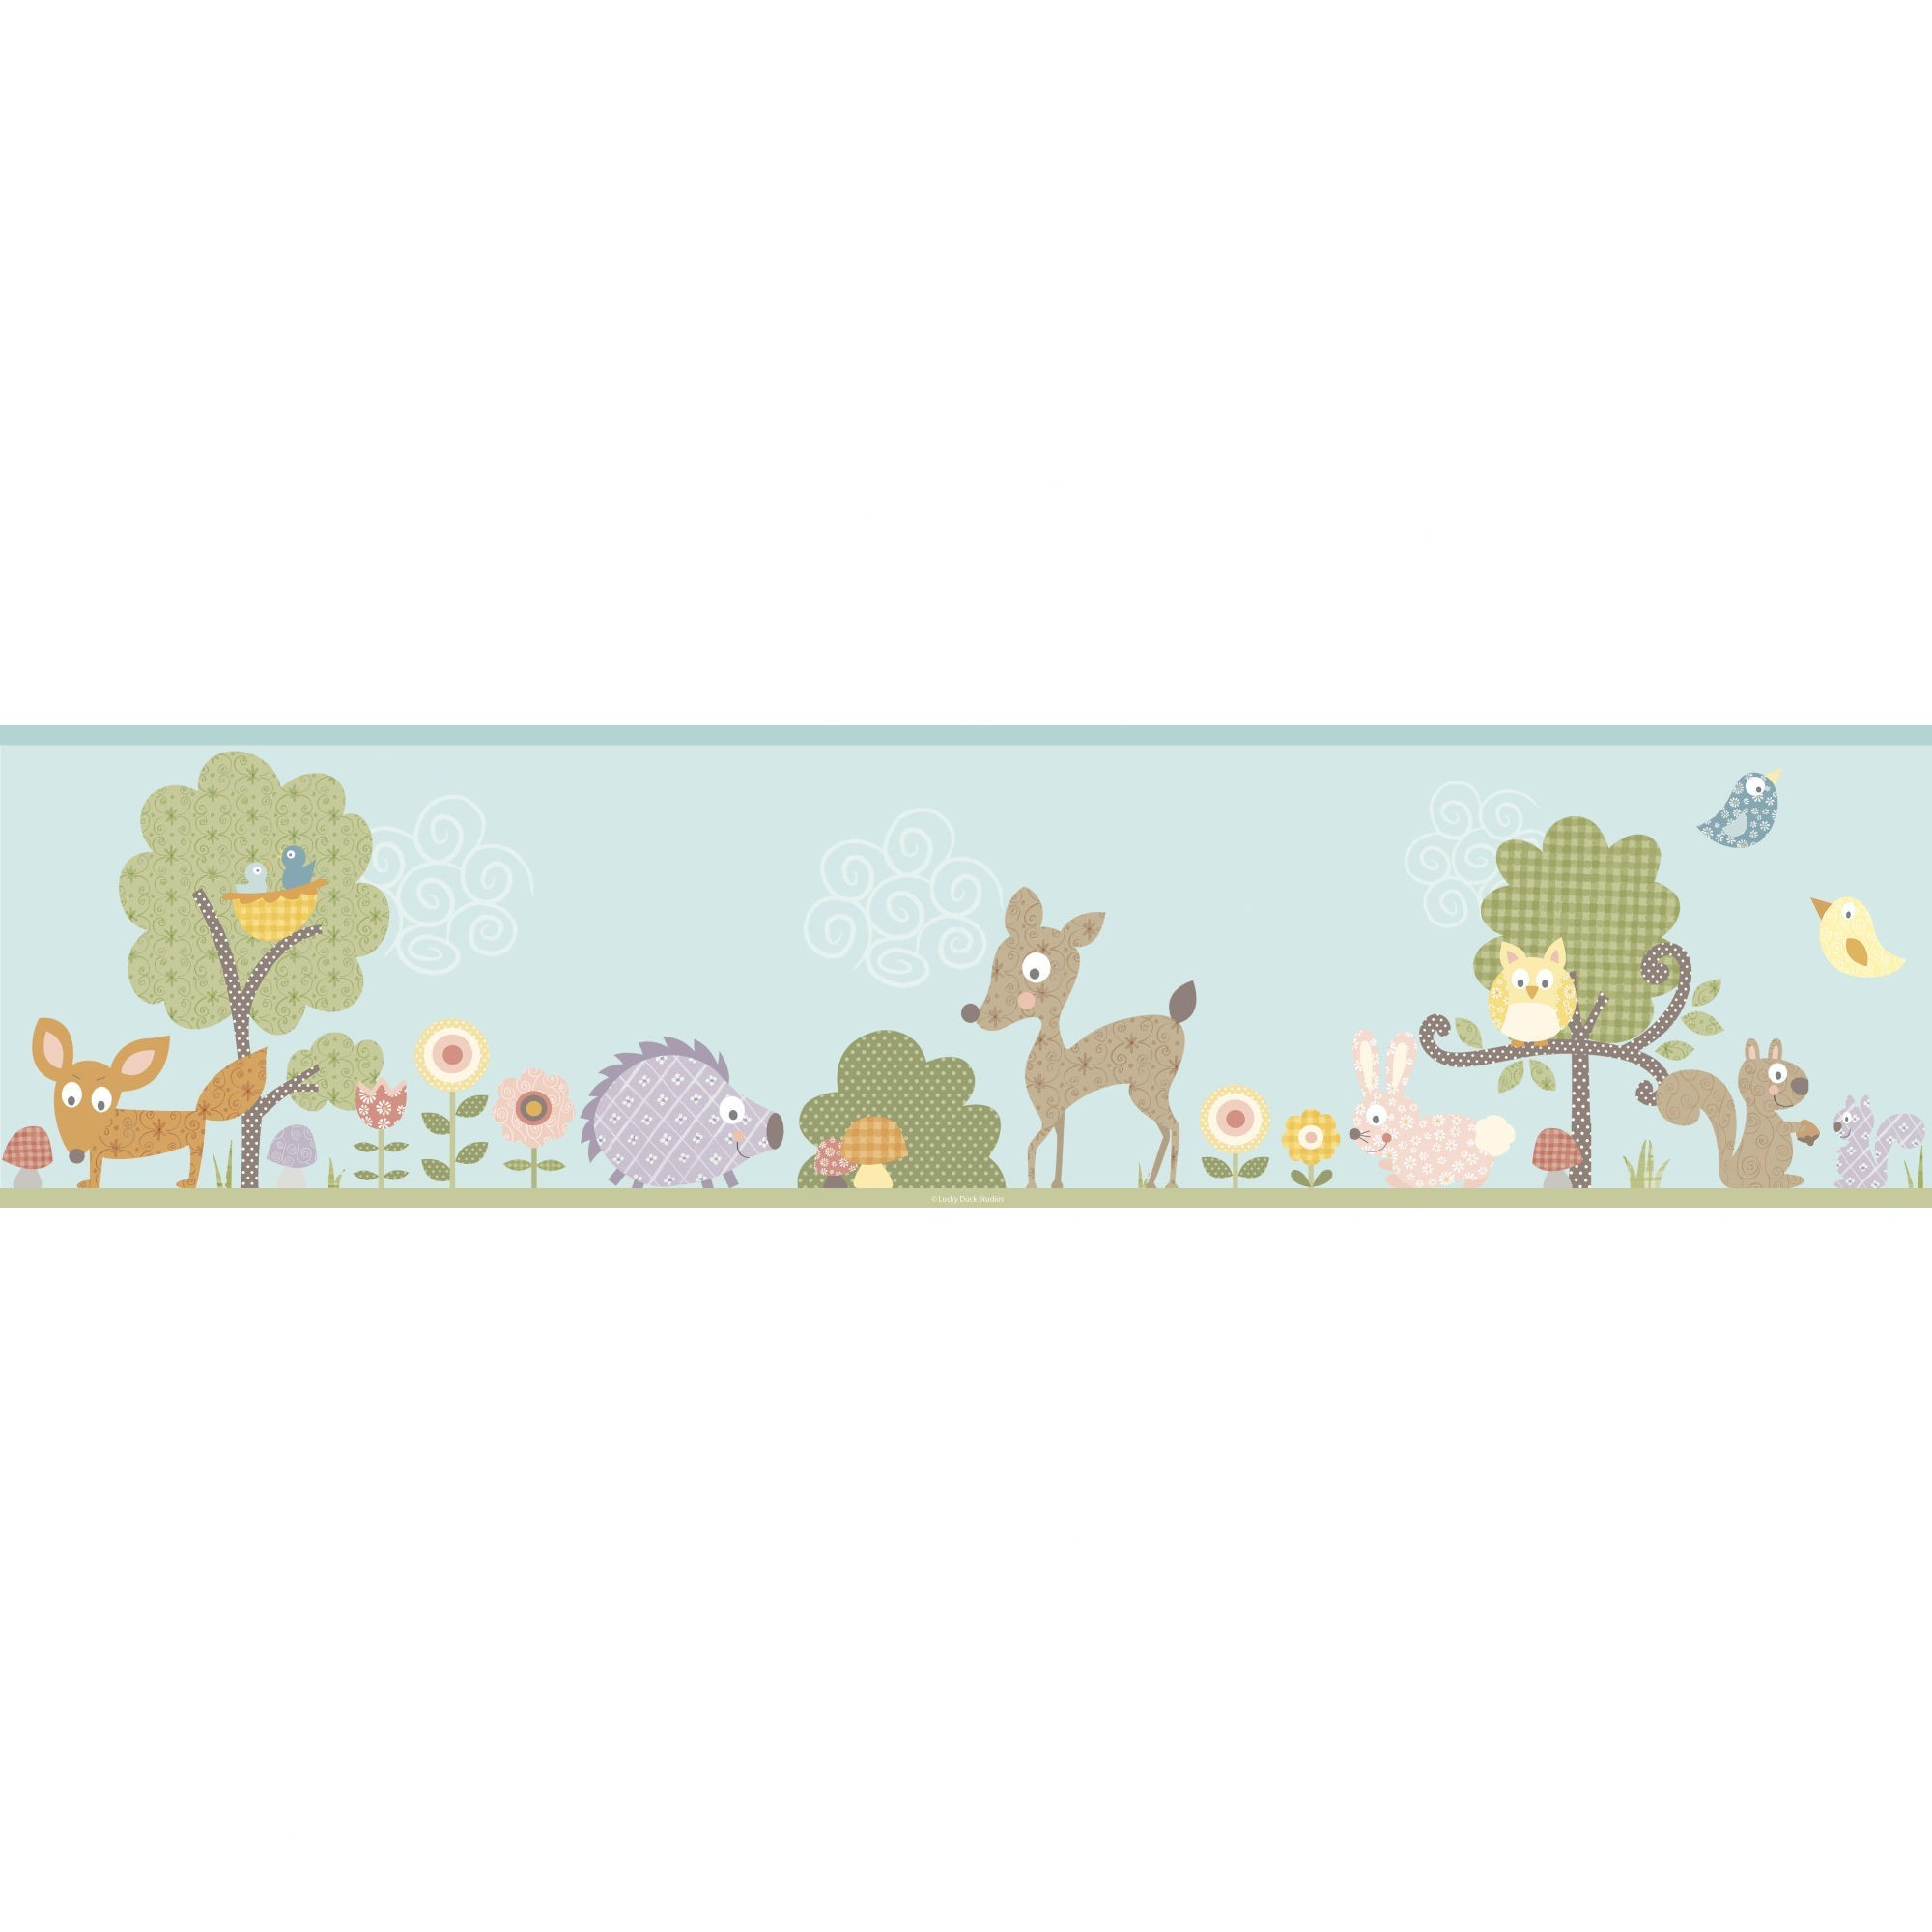 2000x2000 Room Mates Studio Designs Woodland Animals Wall Border - RMK1420BCS